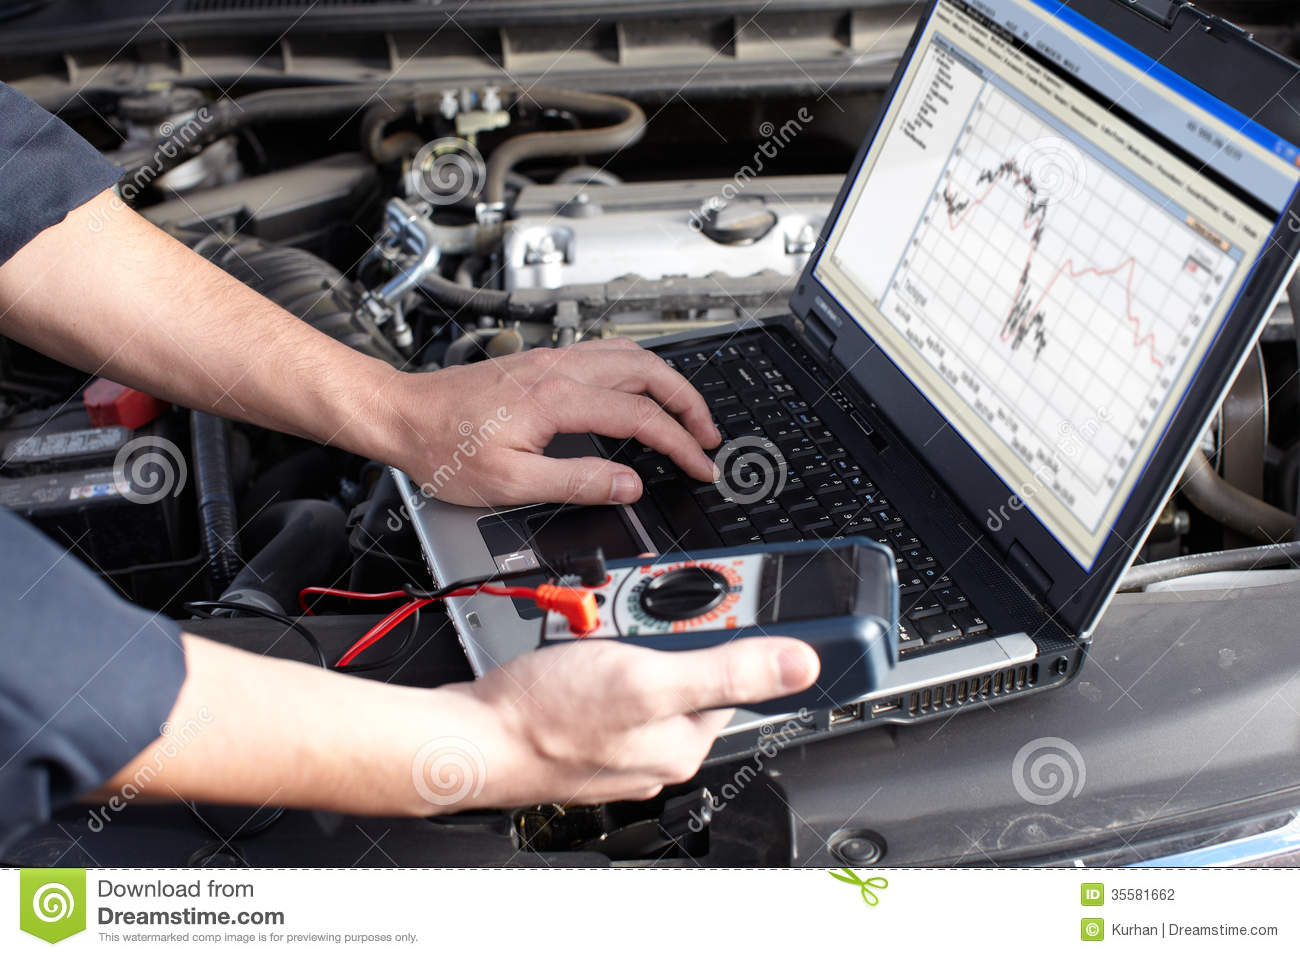 car-mechanic-working-auto-repair-service-professional-35581662.jpg